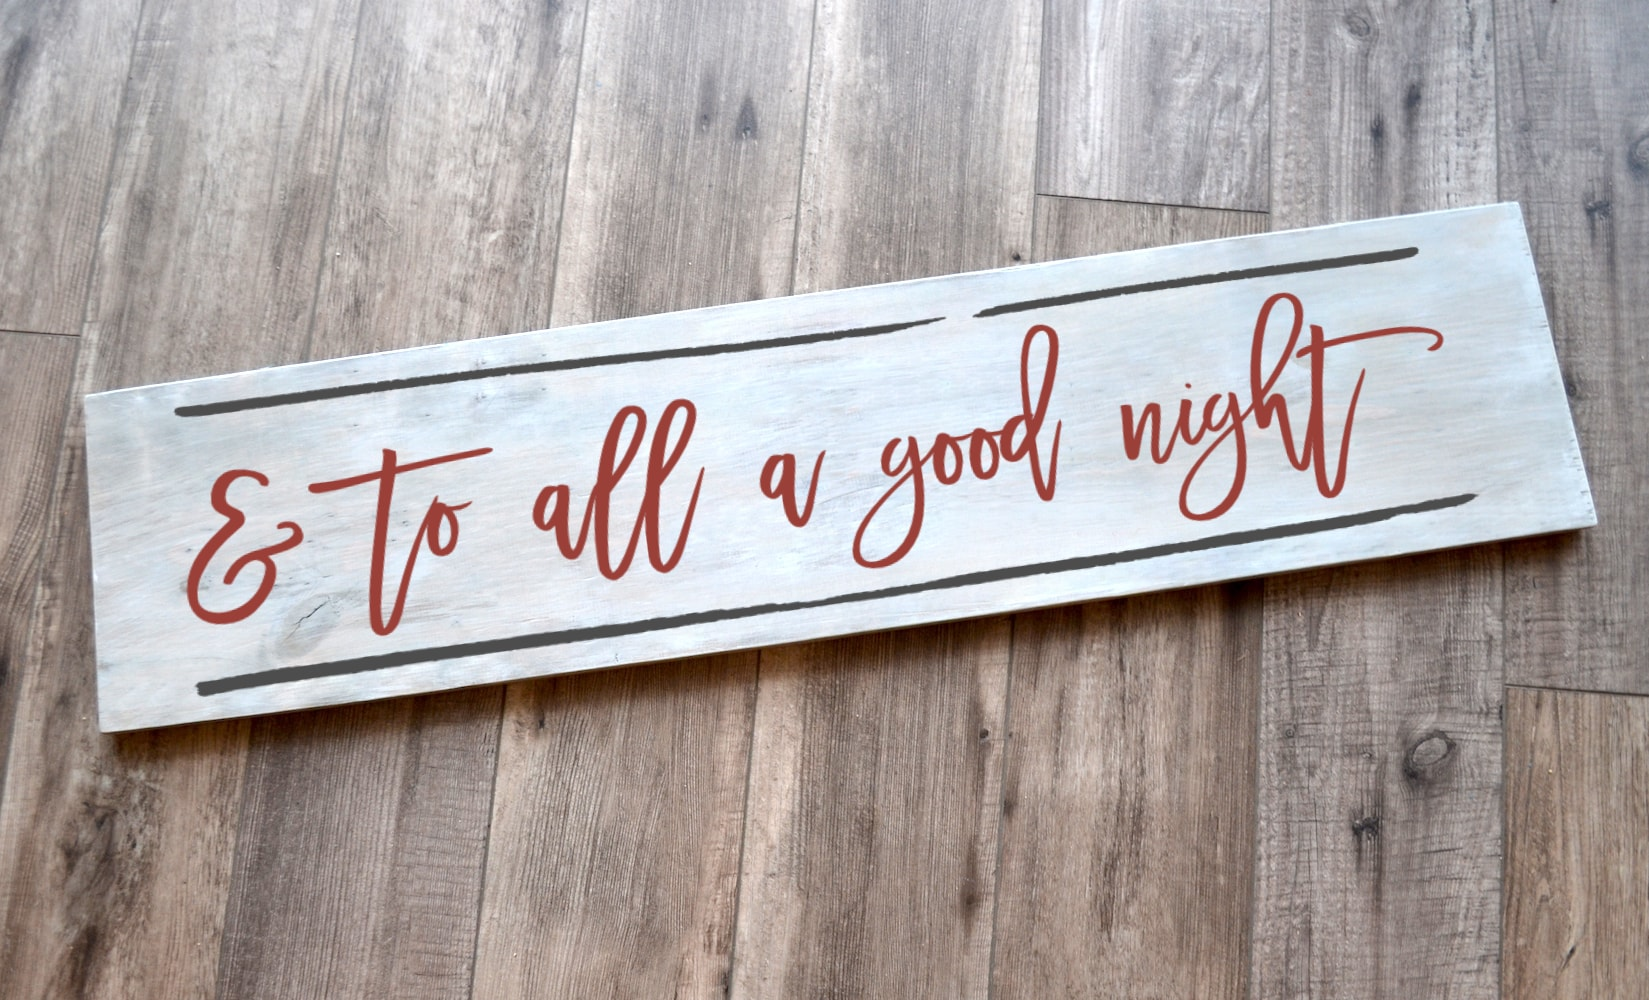 and to all a good night-min